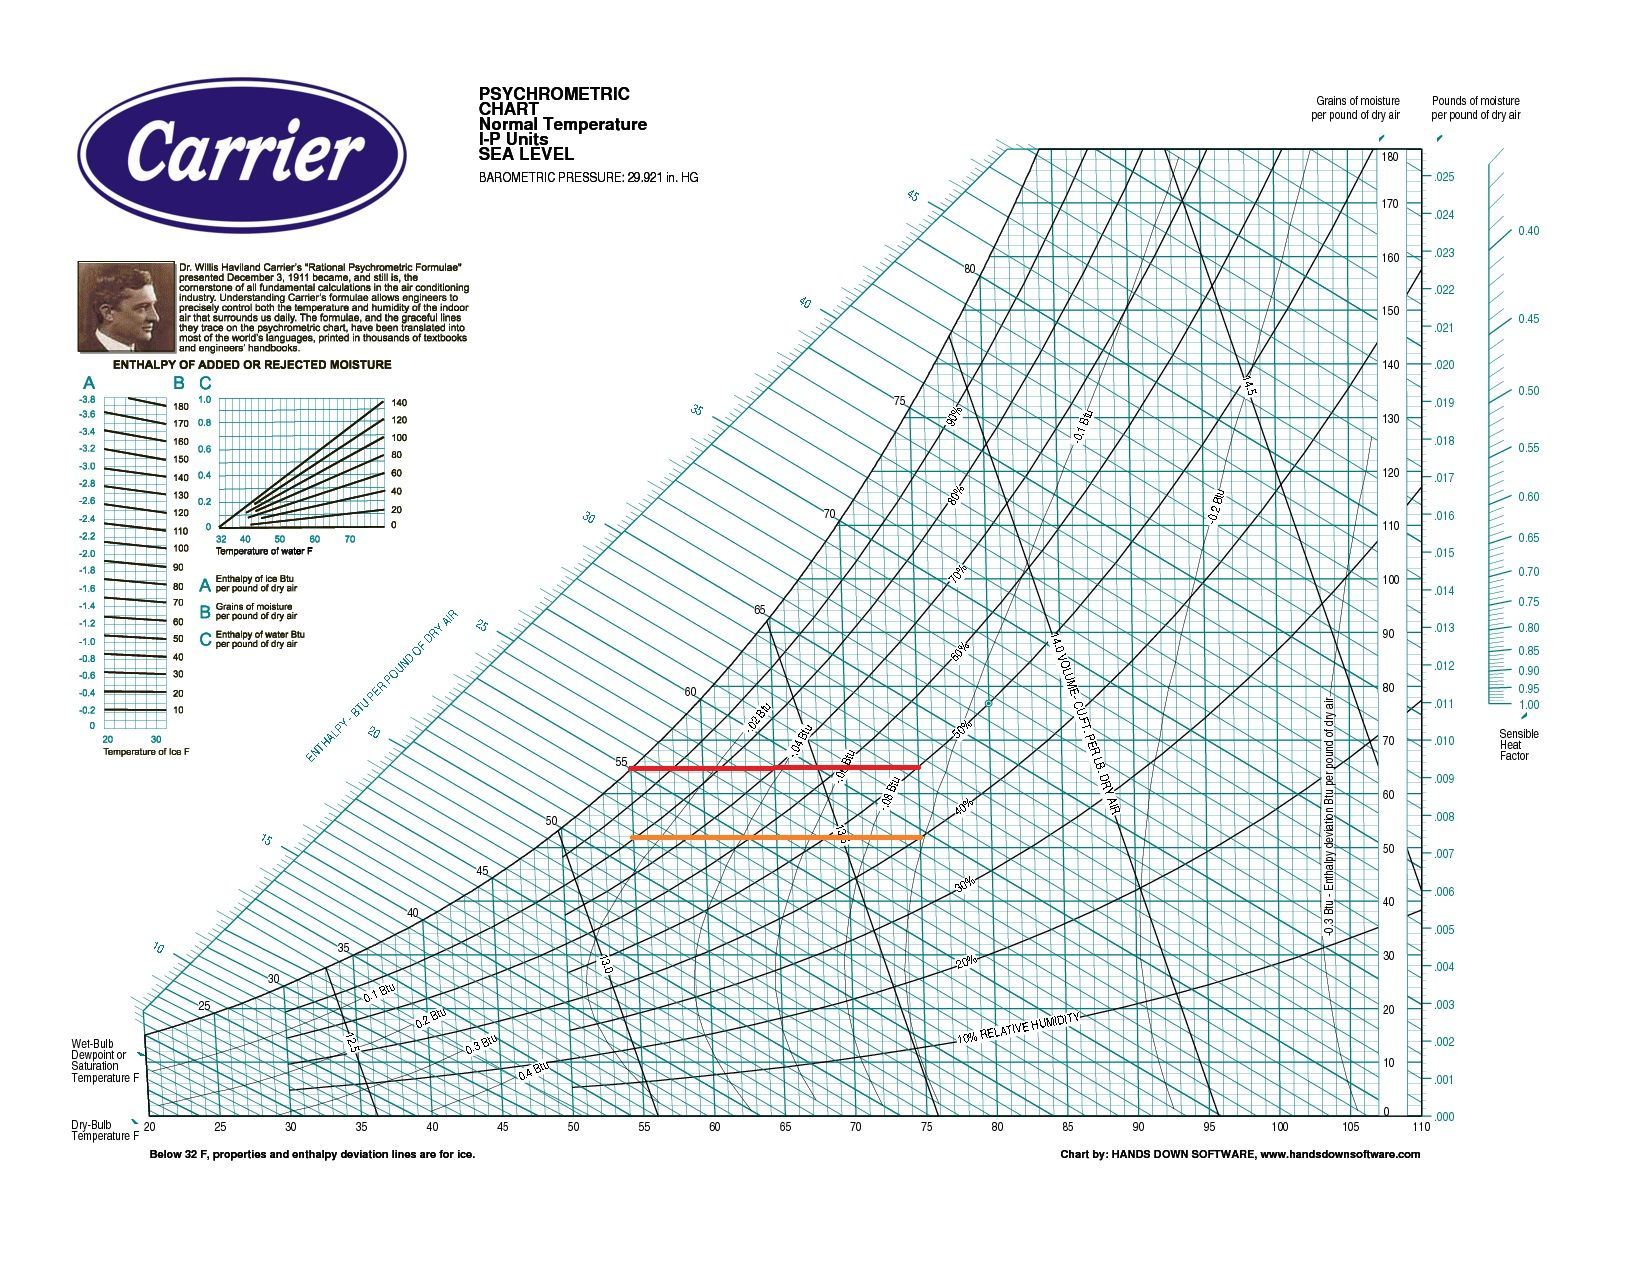 image about Printable Psychrometric Chart known as The psychrometric chart demonstrates various quanies: dry